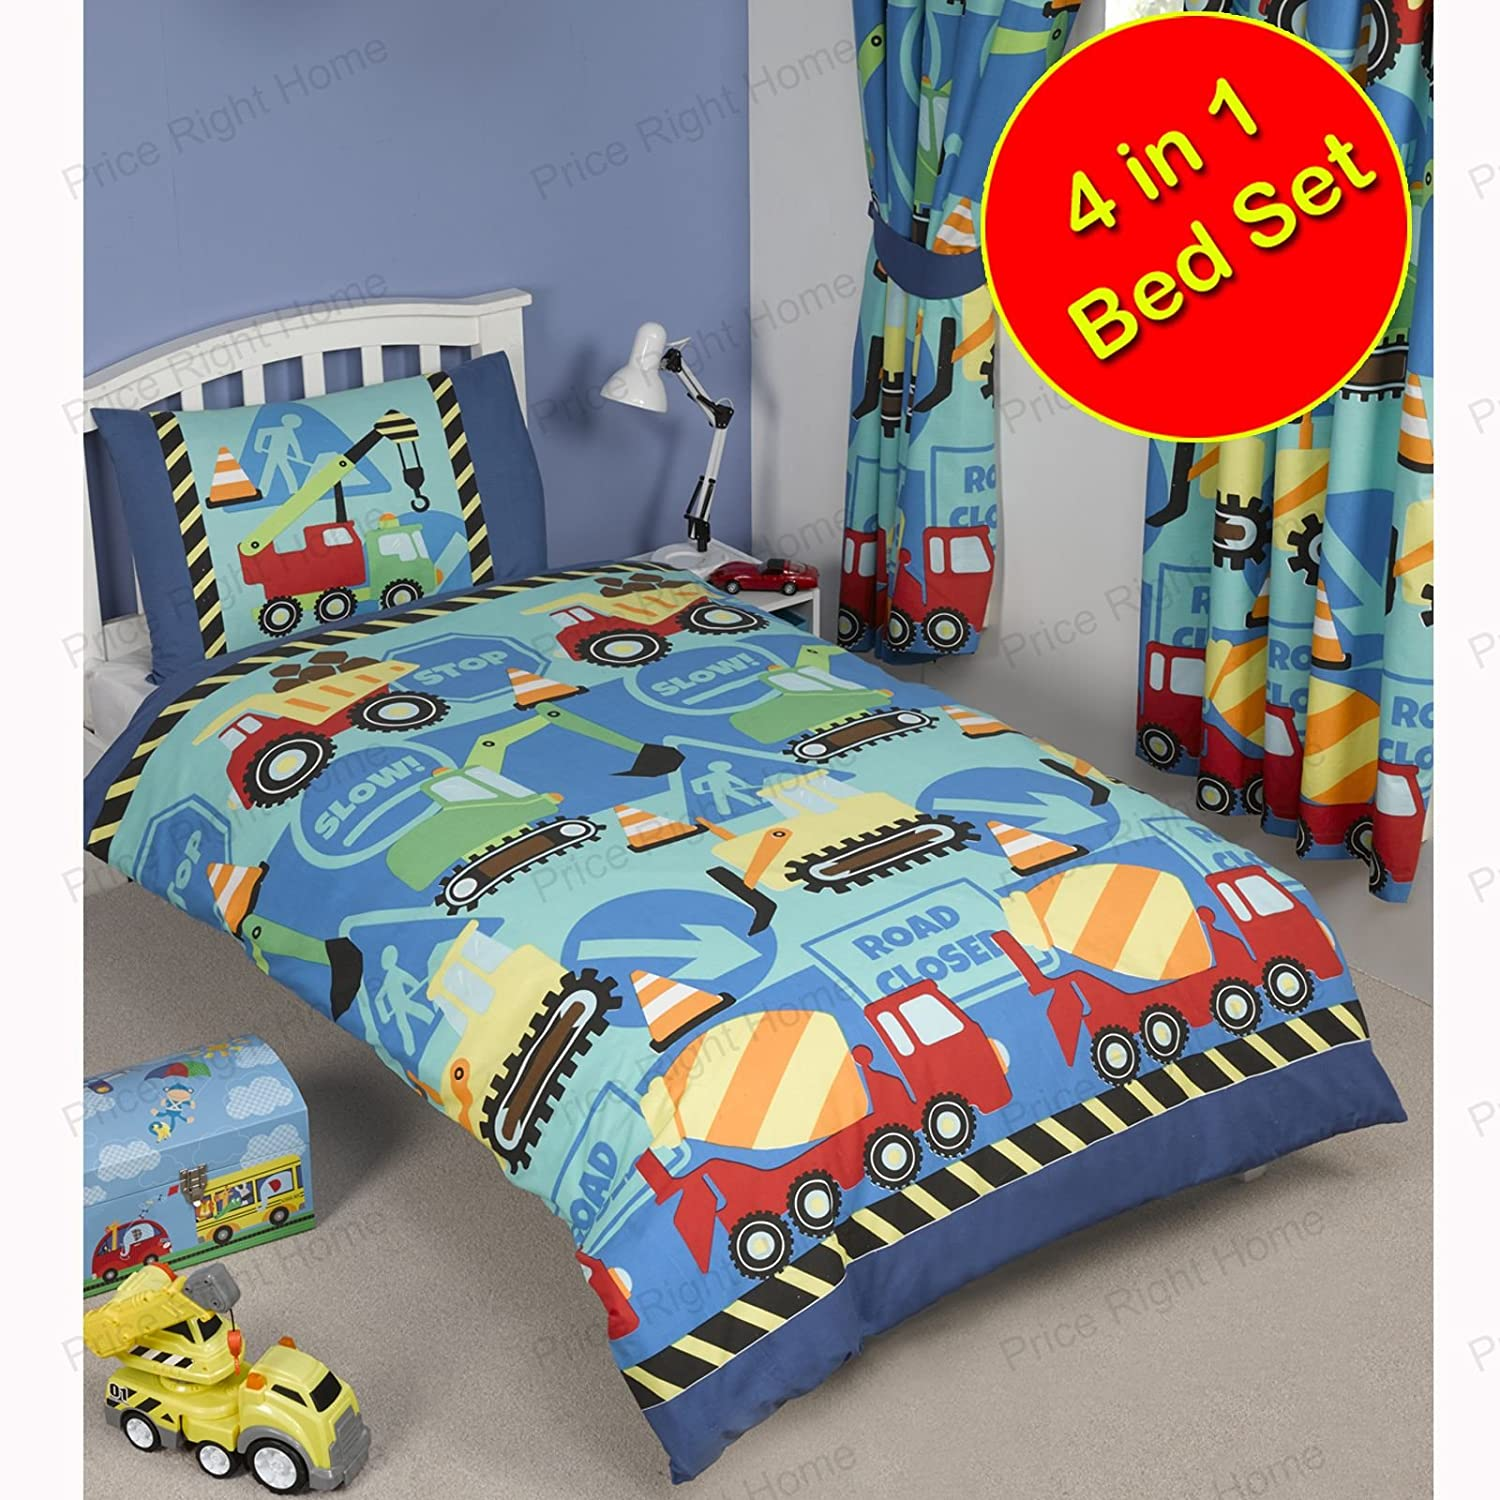 Construction Time 4 in 1 Junior Bedding Bundle (Duvet, Pillow, Covers) Rapport